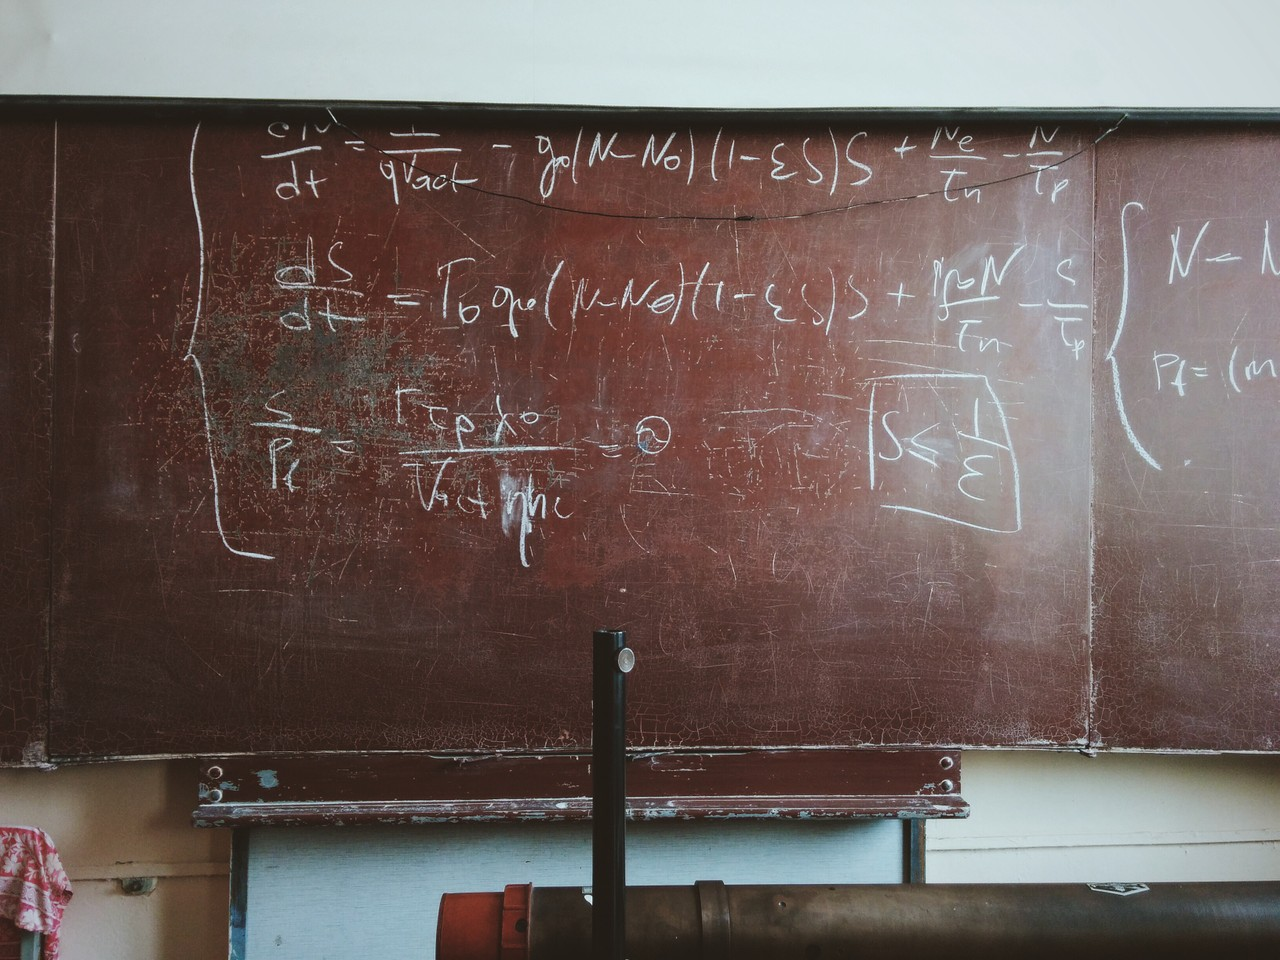 Does programming require knowing math?